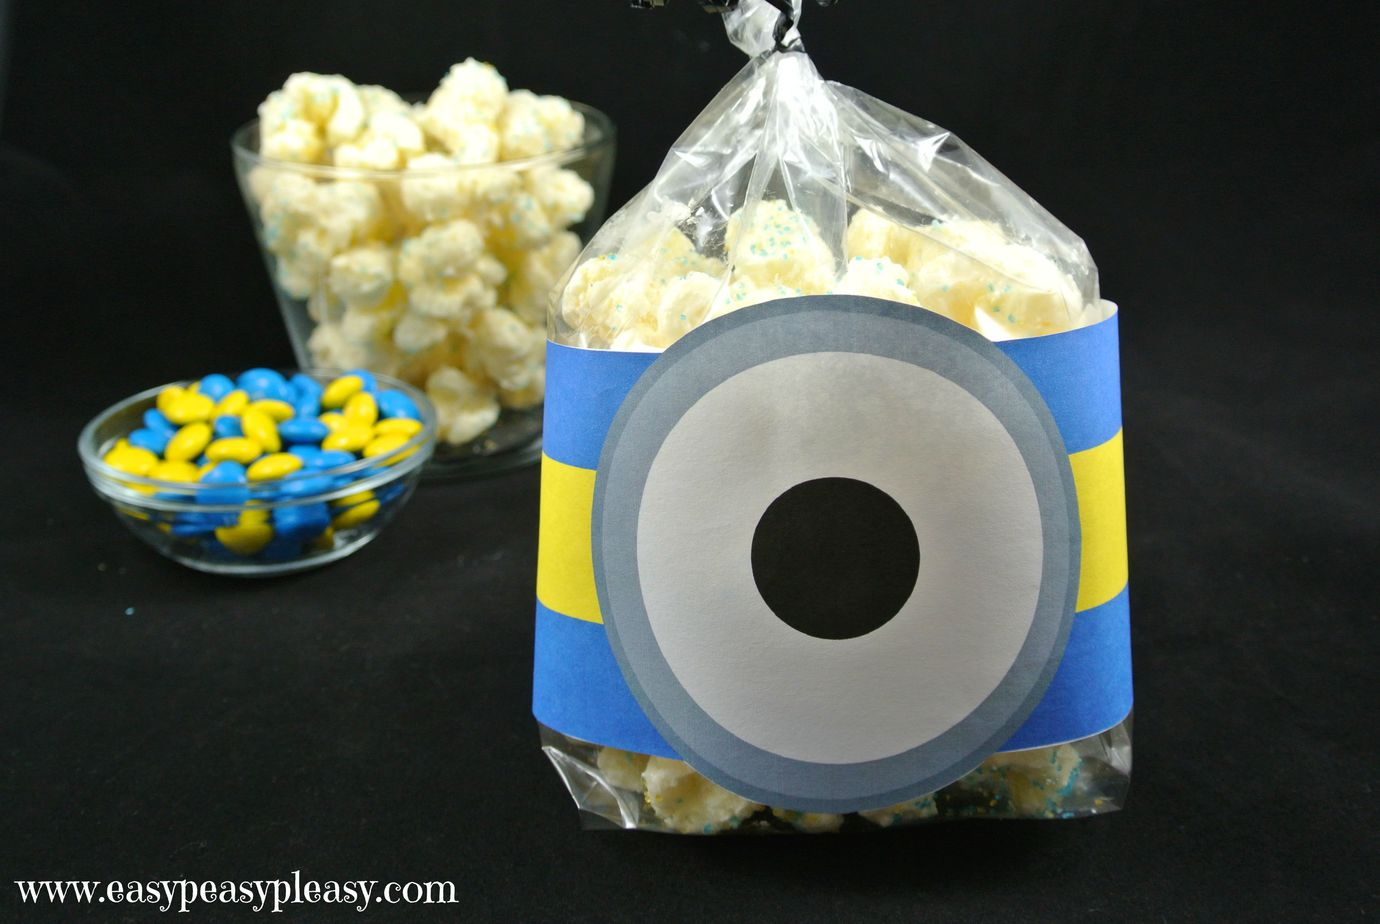 photo regarding Minion Symbol Printable known as Cost-free Minions Printable - Uncomplicated Peasy Pleasy